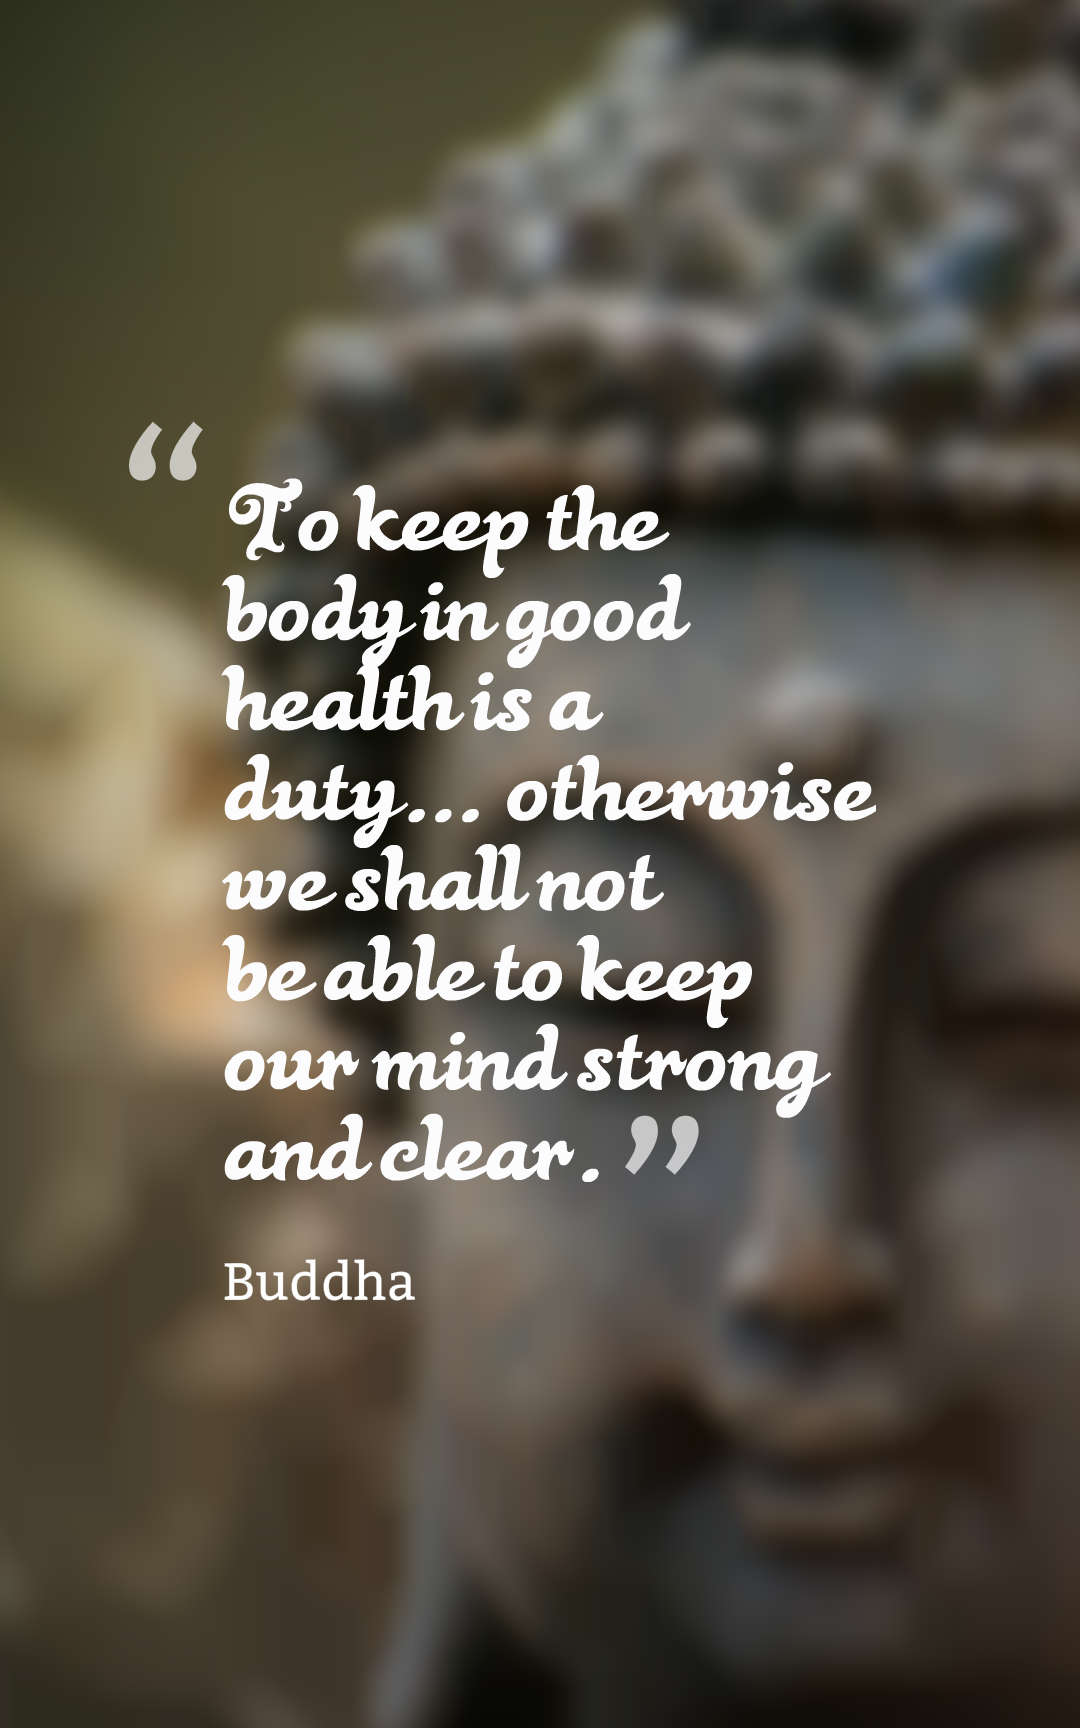 buddha quotes To keep the body in good health is a duty